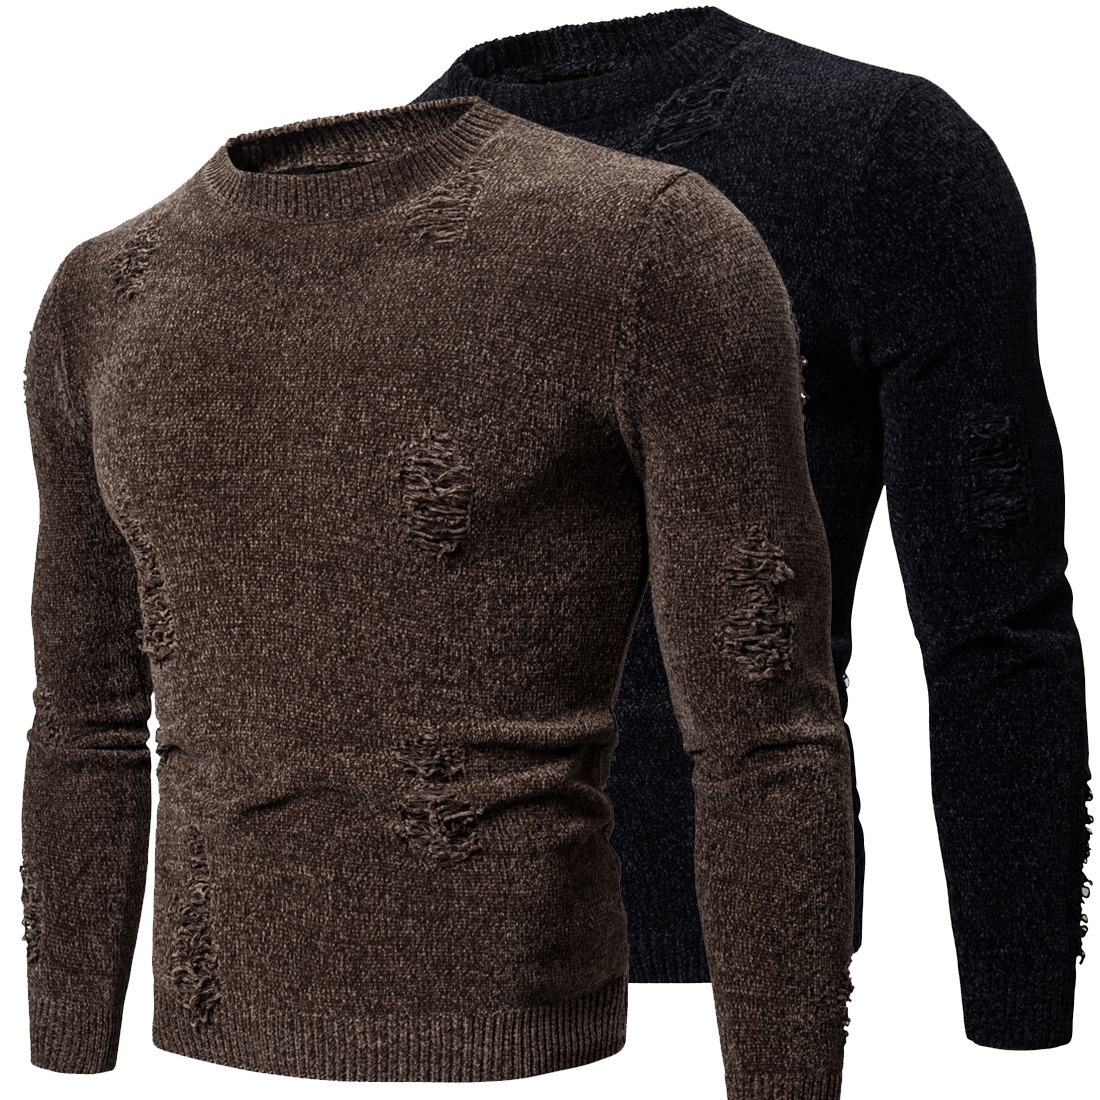 Men's New Business Personality Turtleneck Sweater With Holes In Solid Knit European Size XXL